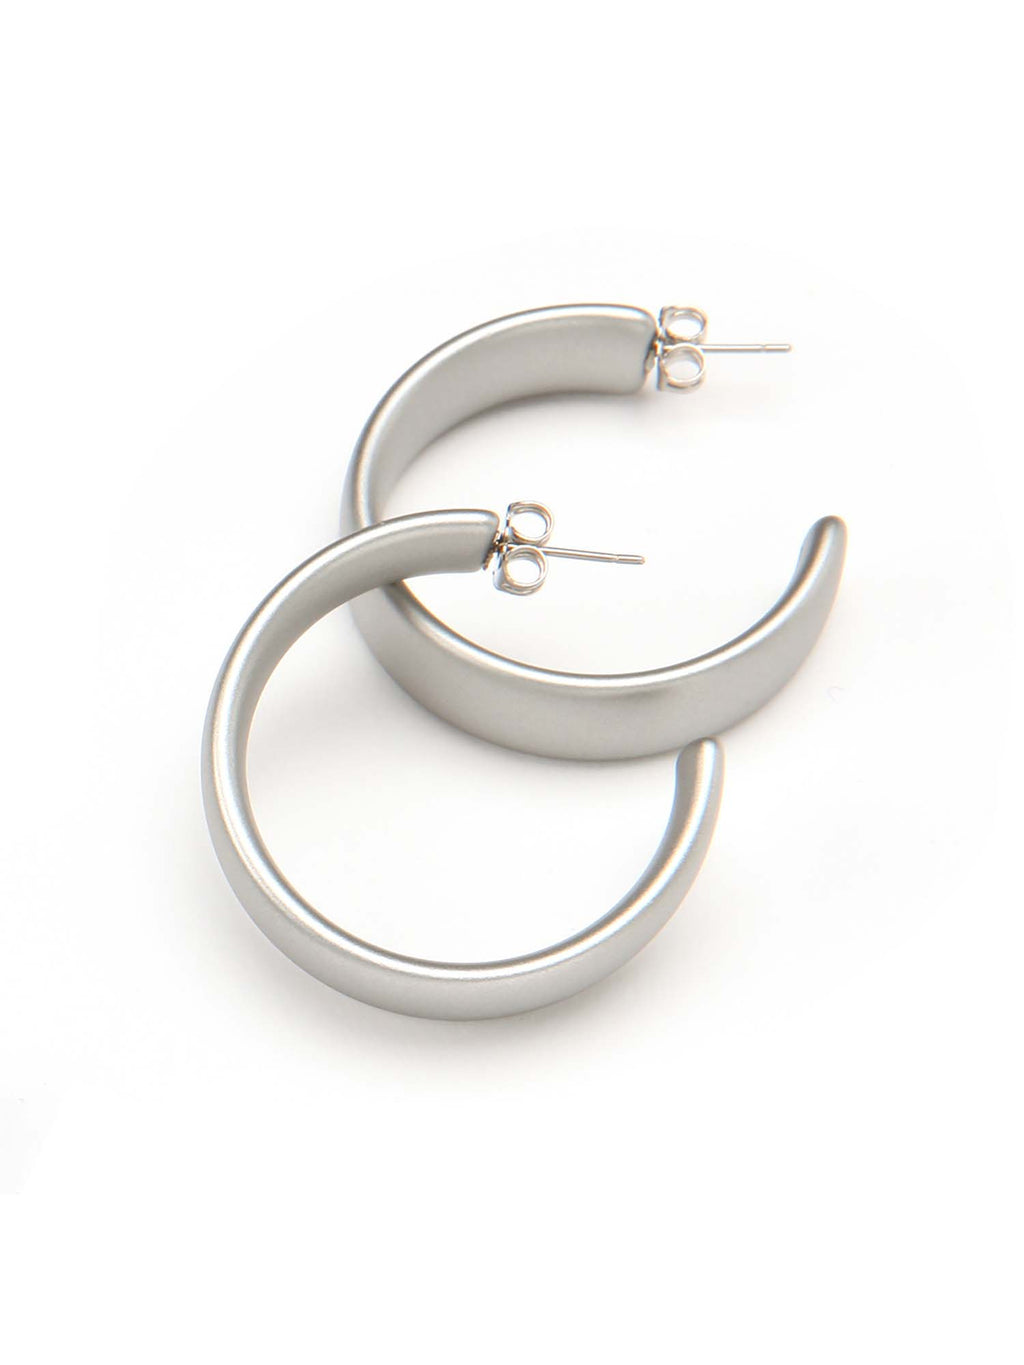 PONO Camille Barile Earring